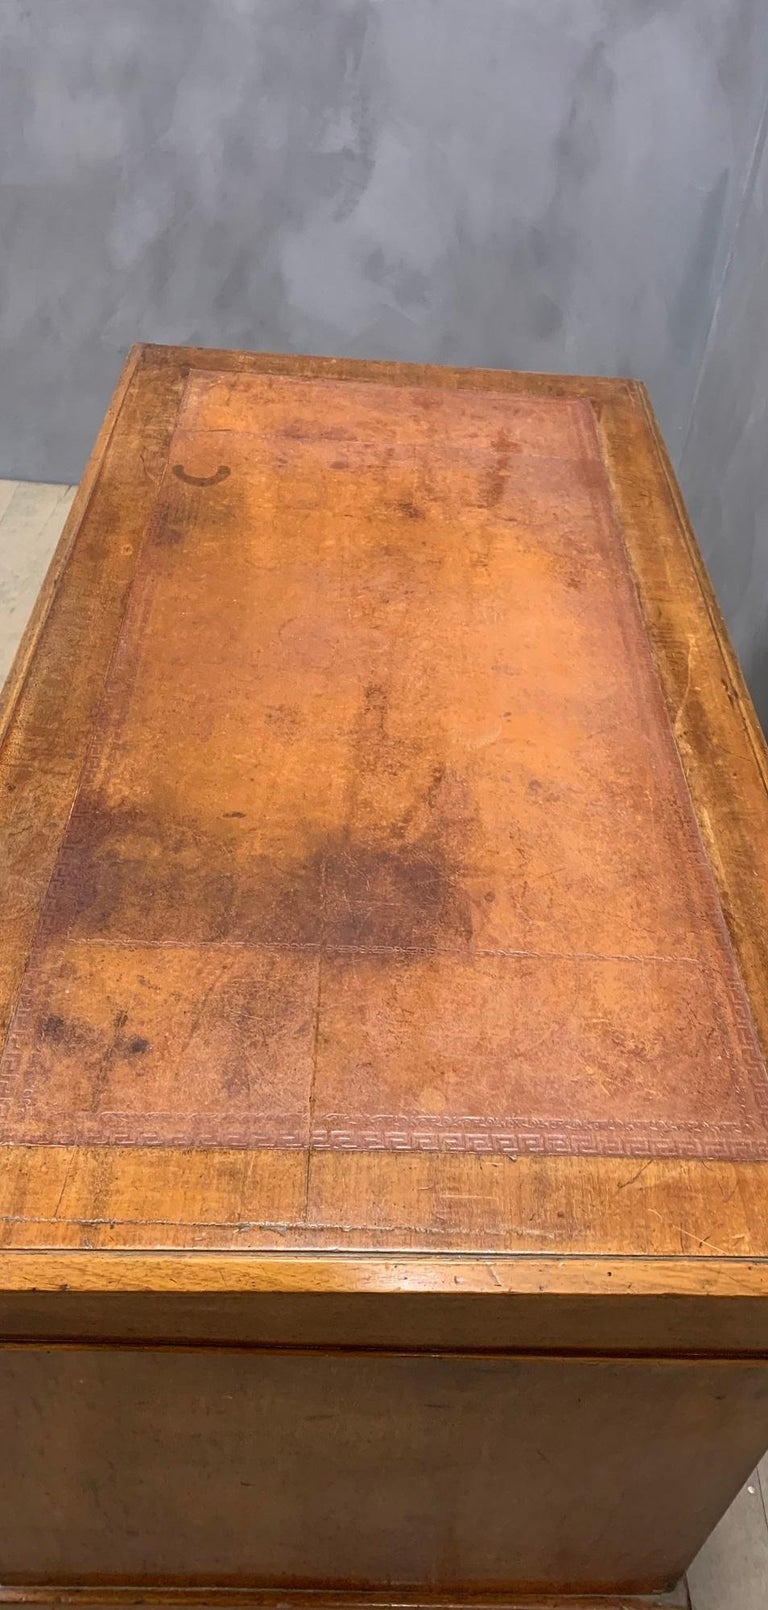 Hand-Crafted 19th Century English Walnut Desk For Sale